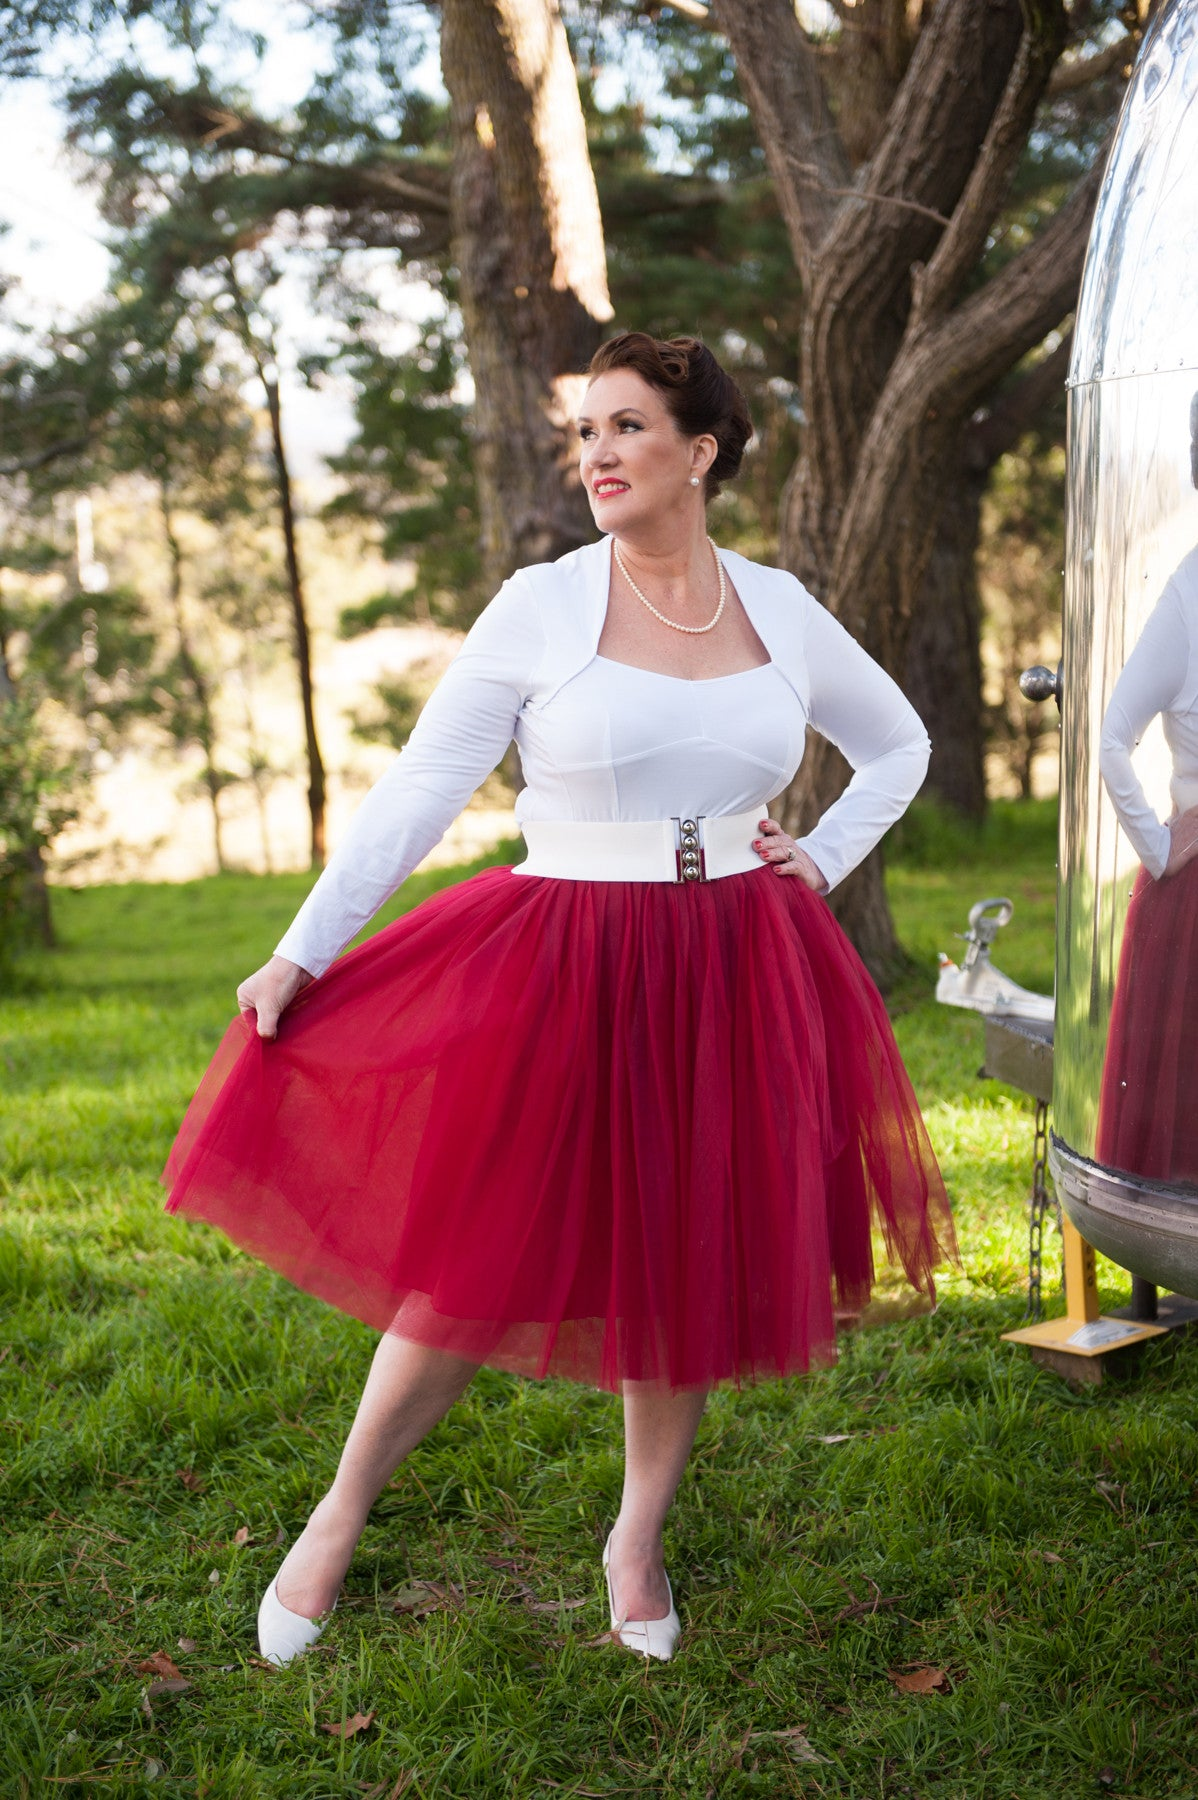 Nostalgia Now - Merlot Tutu paired with Classic Belt